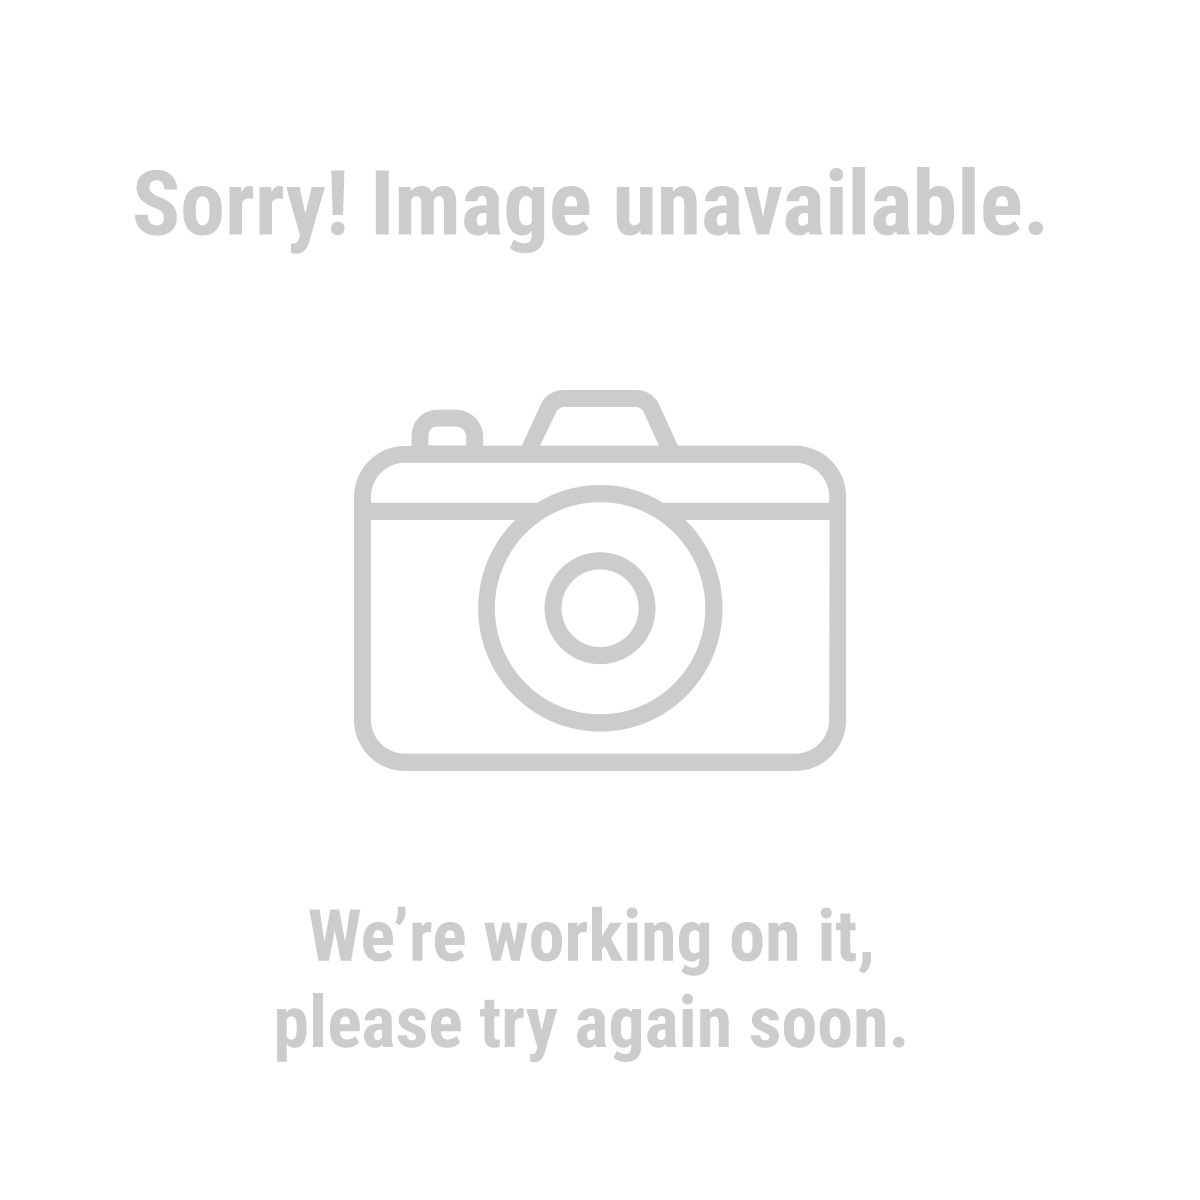 12 Piece Cushion Grip Screwdriver Set